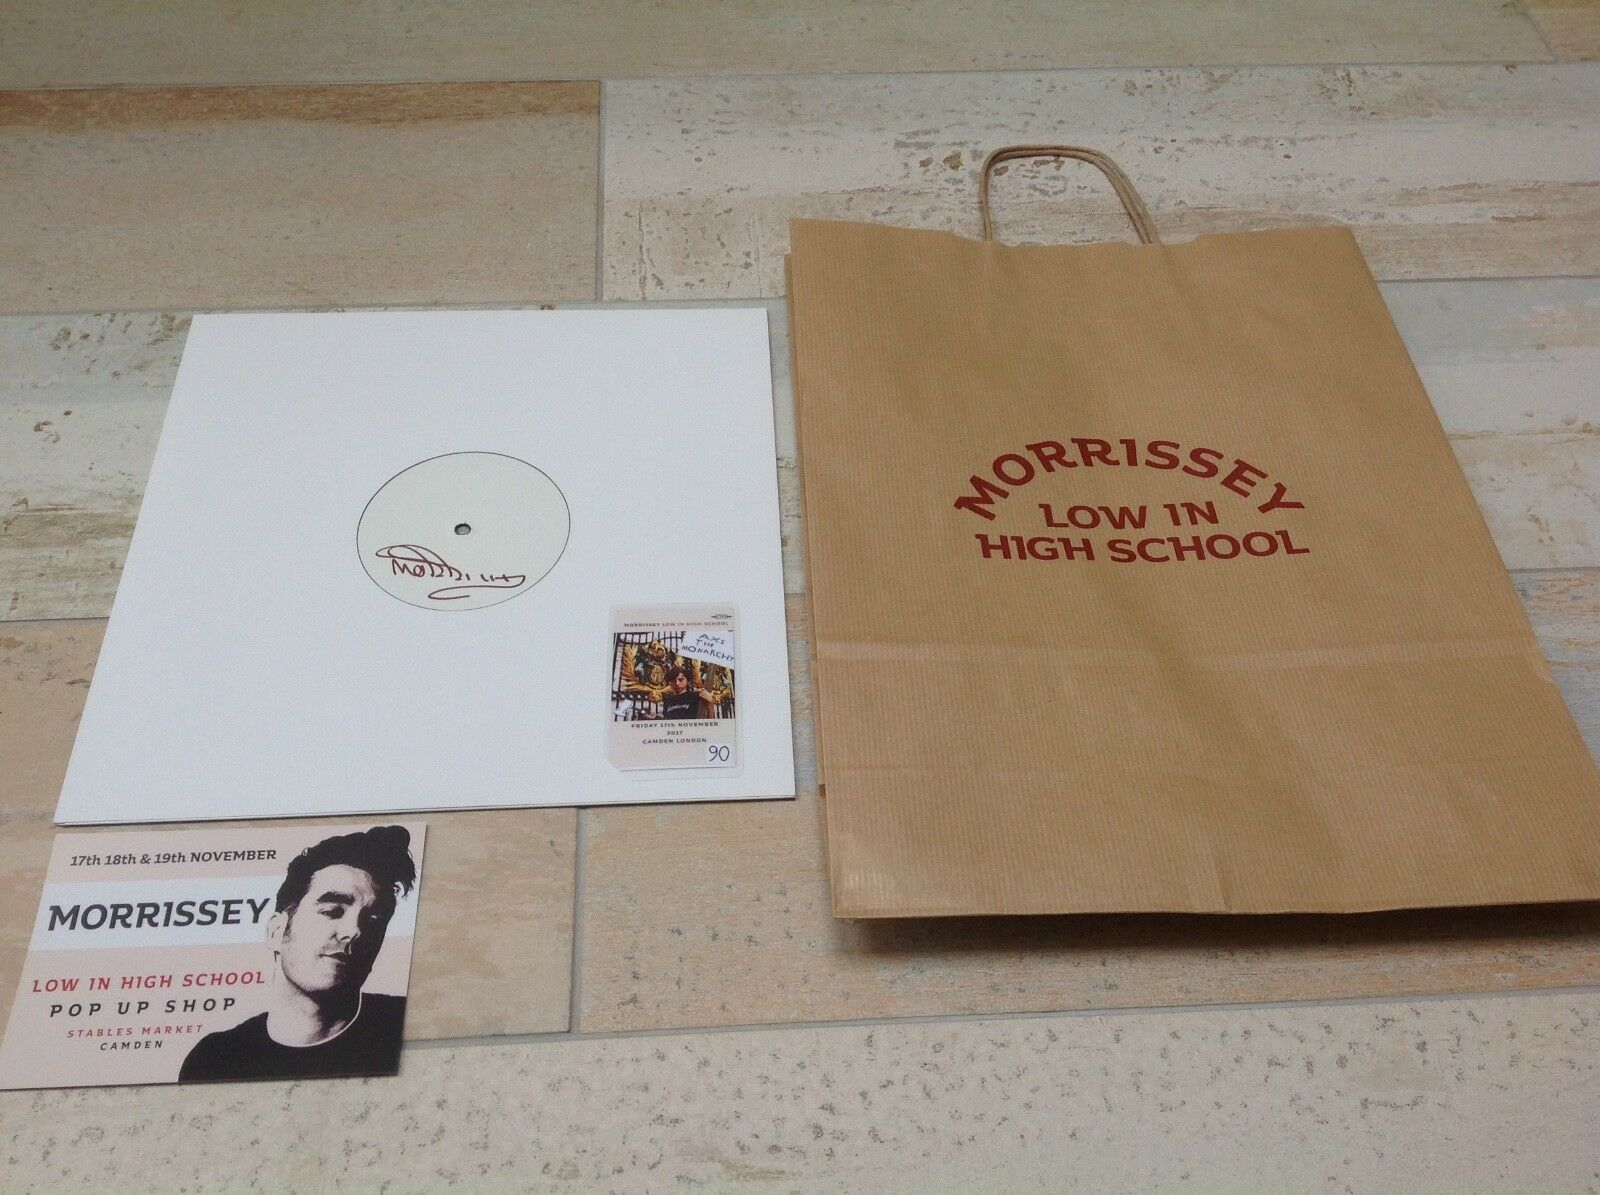 MORRISSEY - LOW IN HIGH SCHOOL -  TEST PRESSING VINYL LP SIGNED  new  THE SMITHS